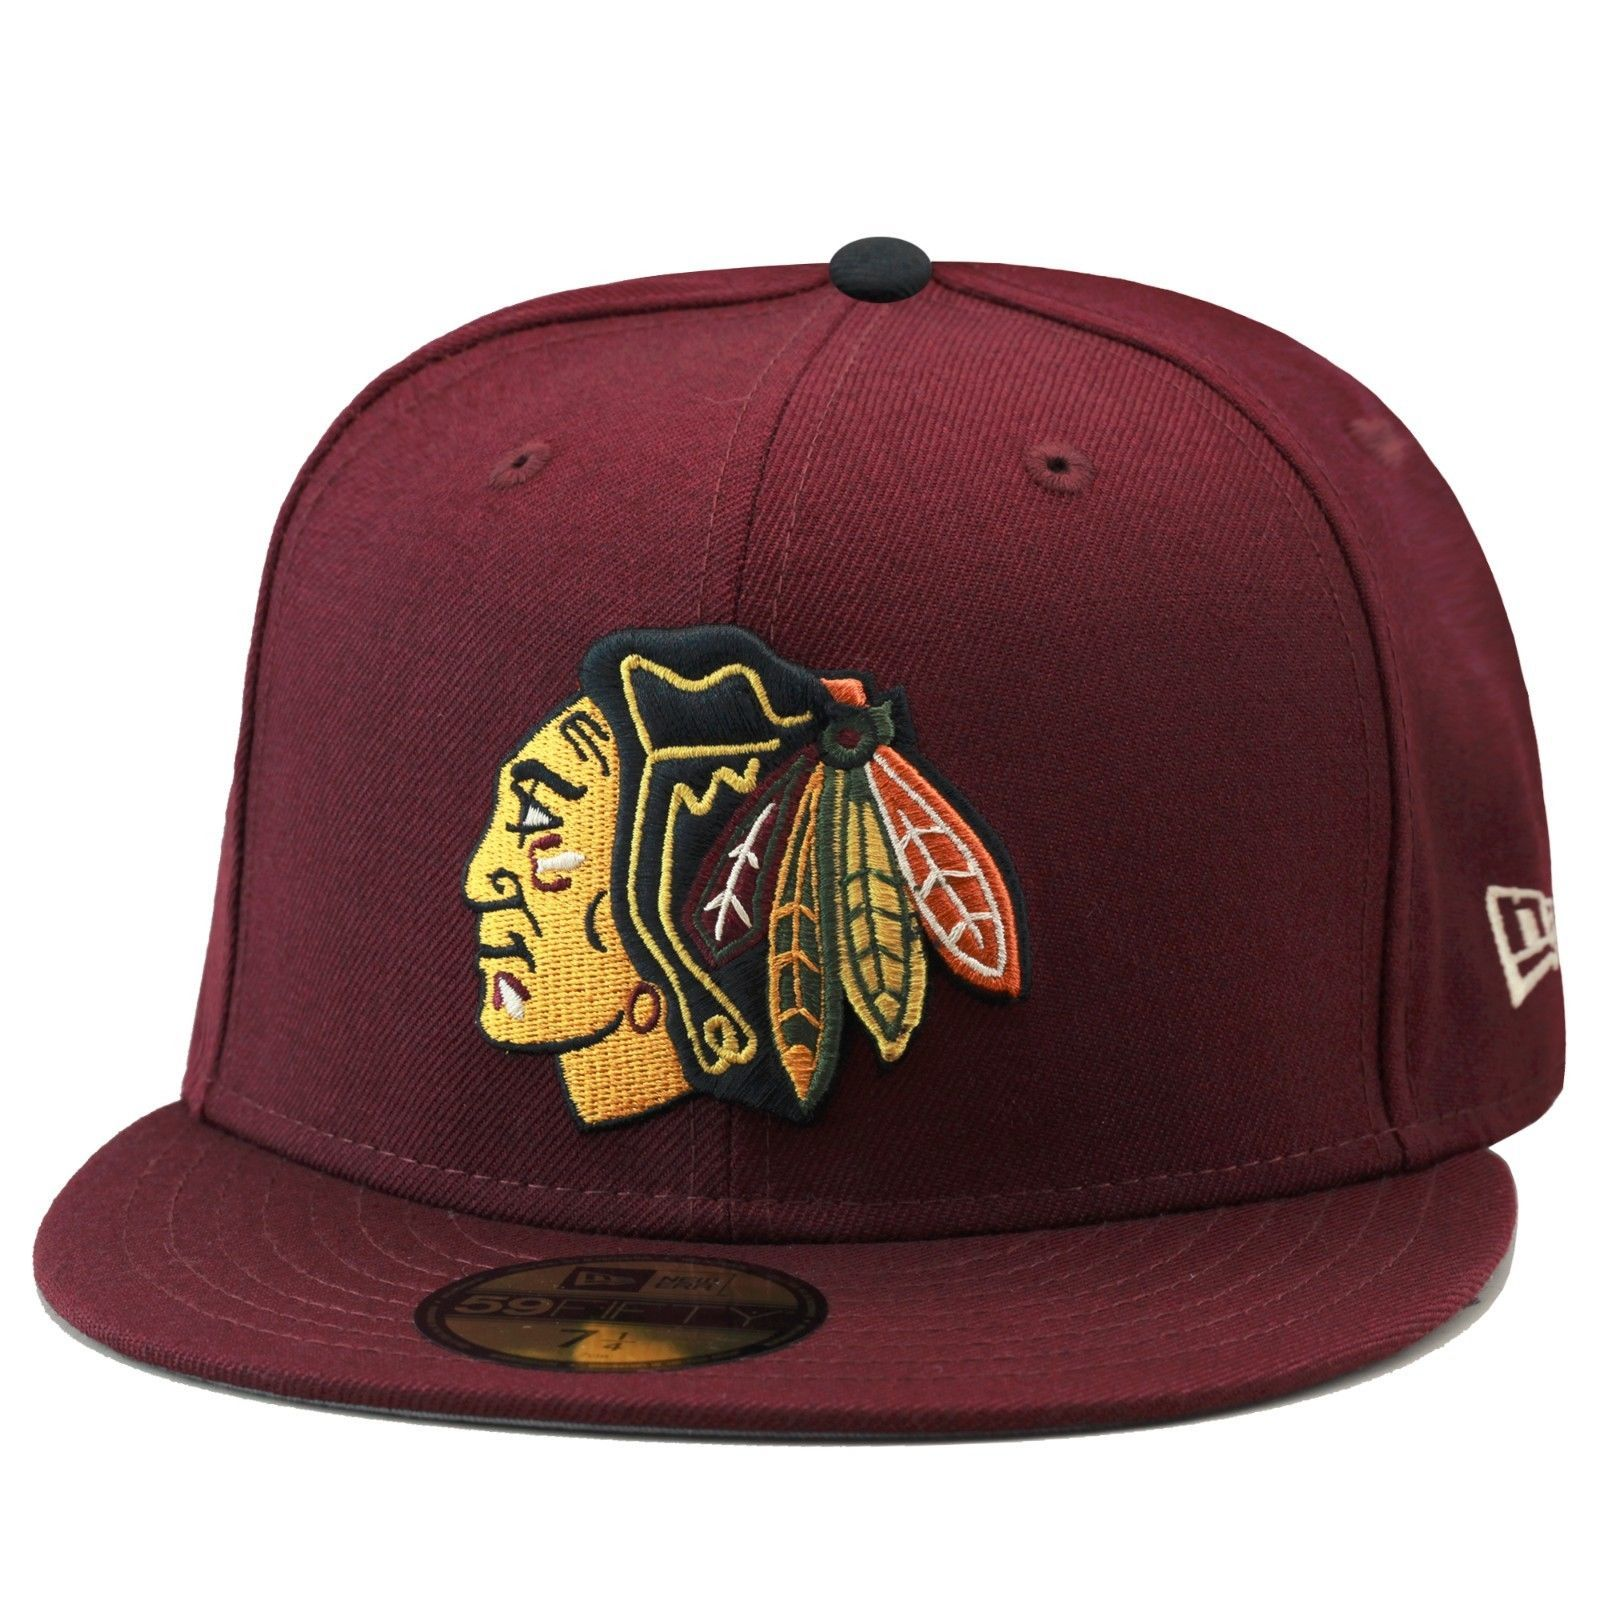 Details about New Era 59fifty Chicago Blackhawks Fitted